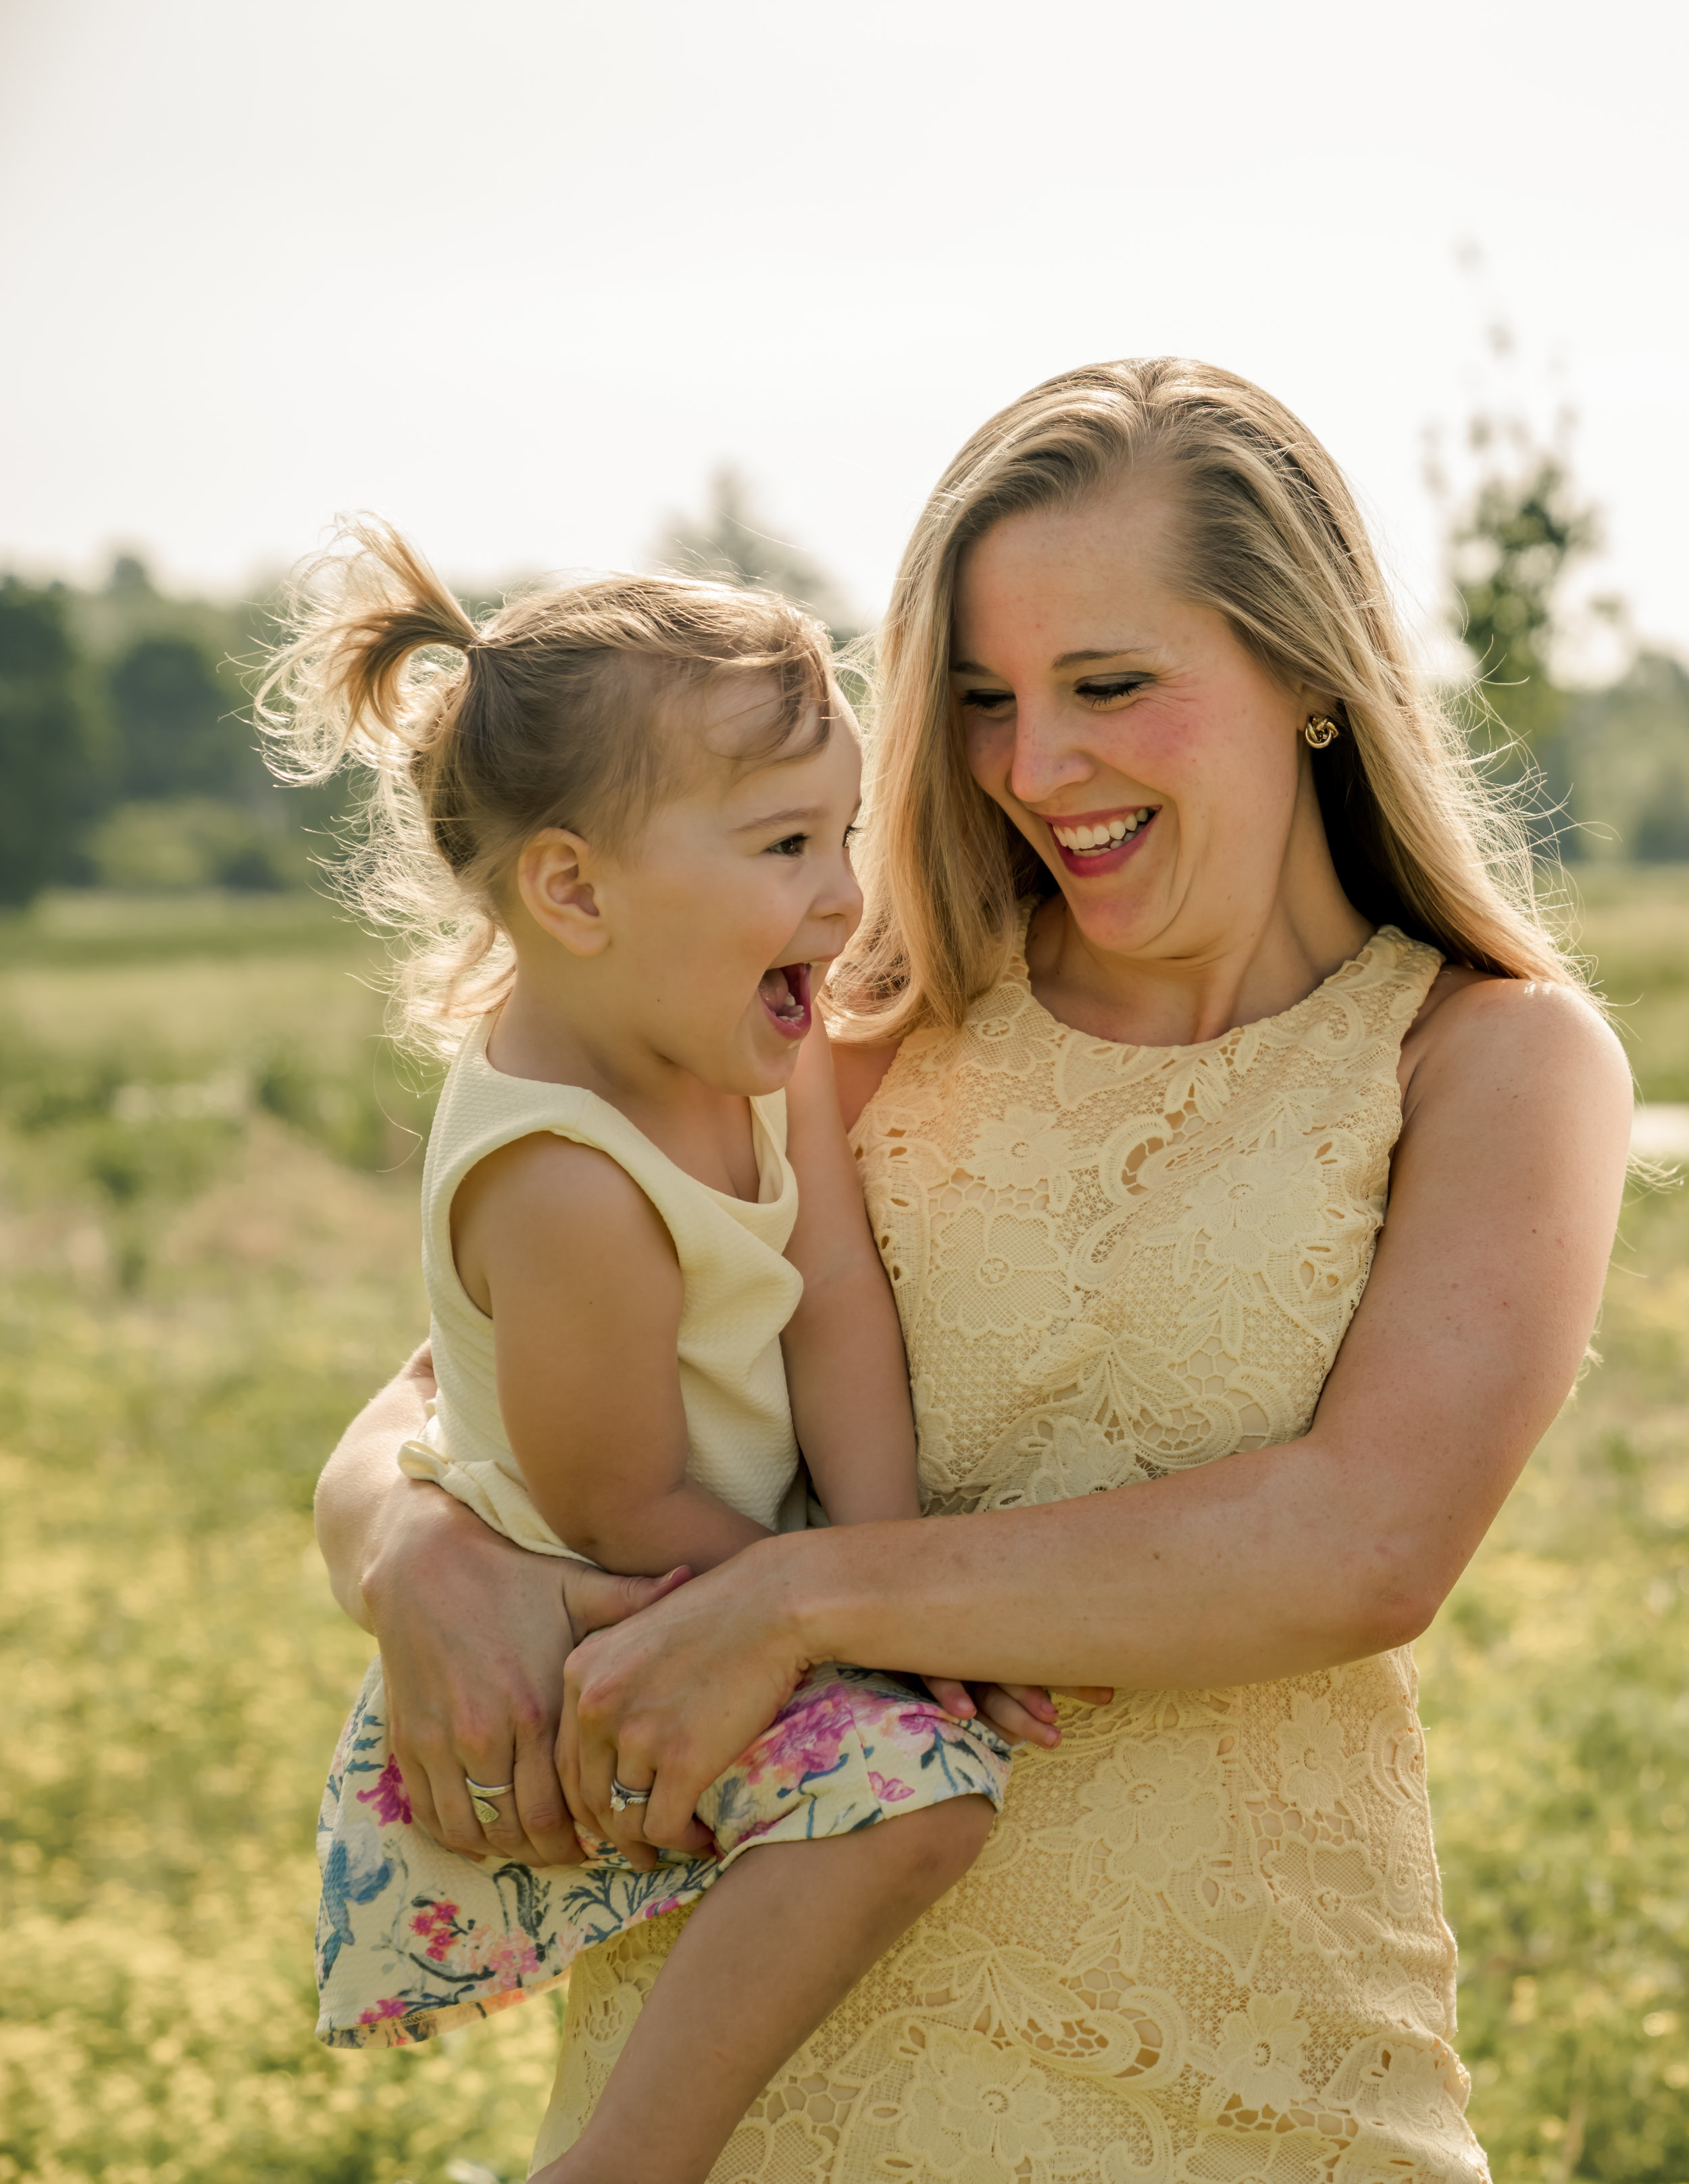 mother daughter family field photo louisville photographer